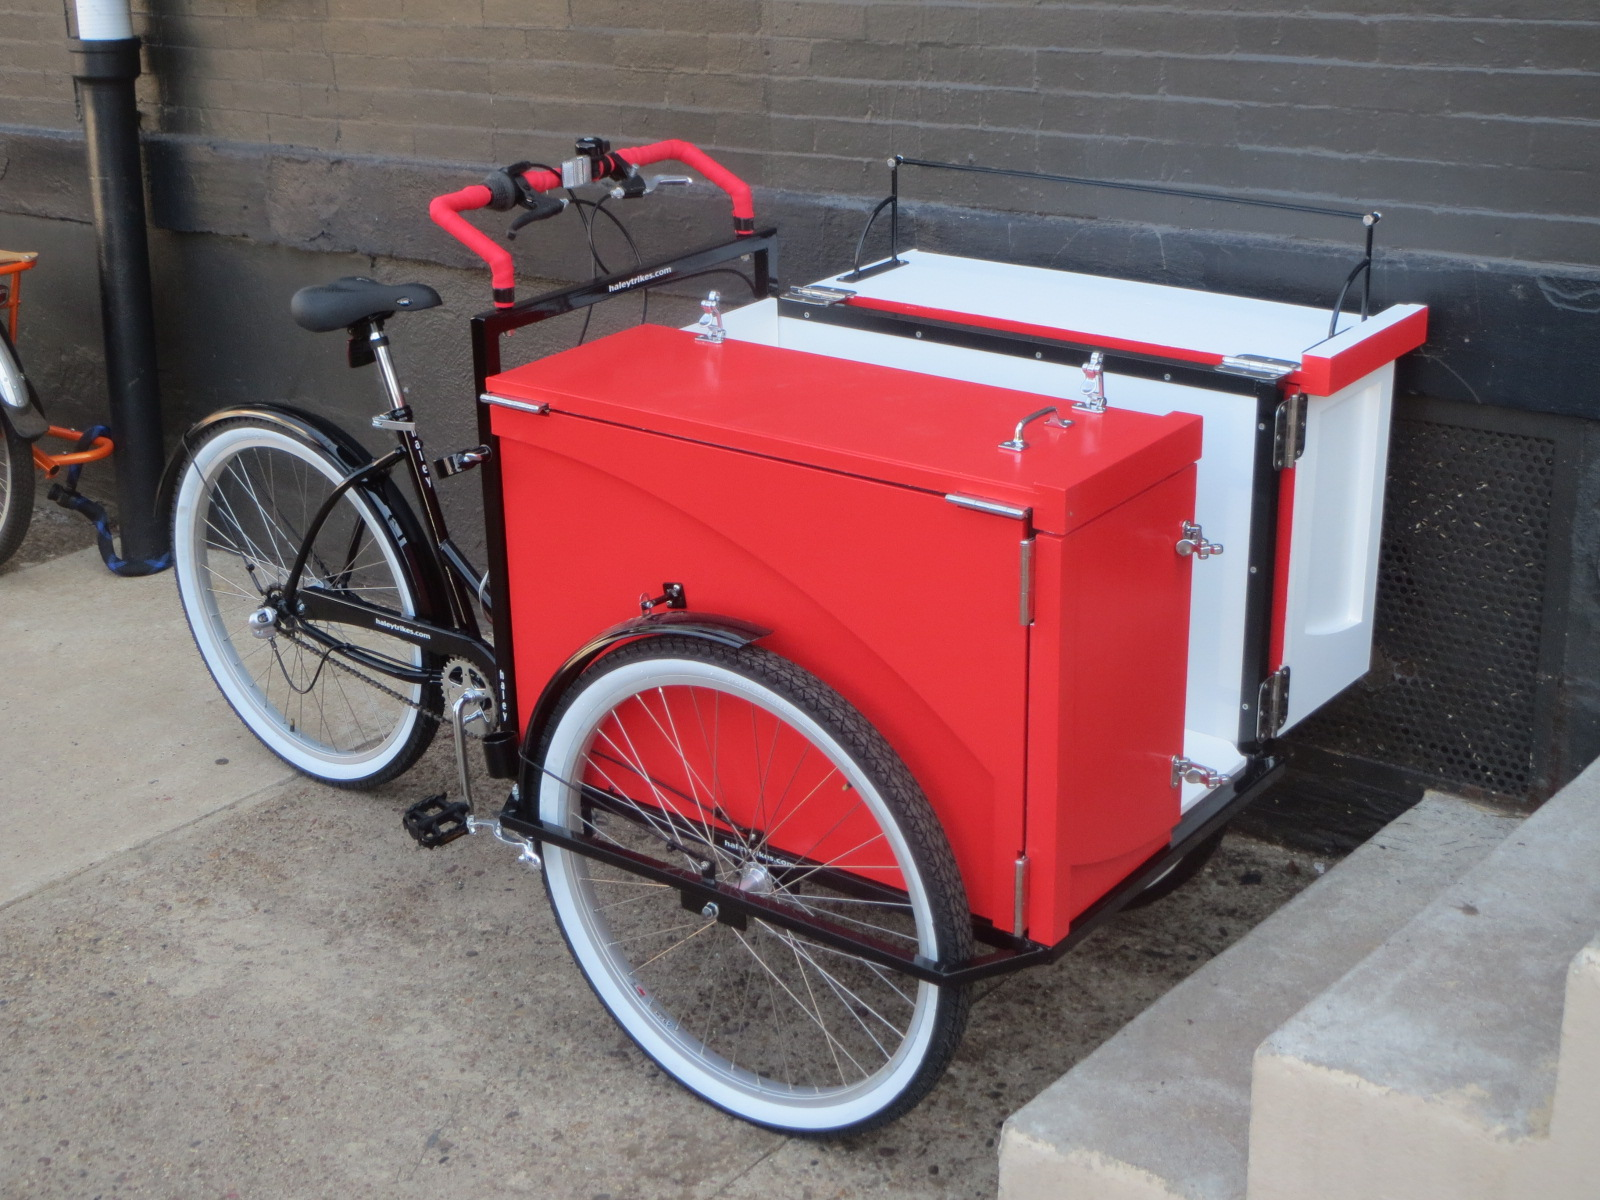 Red and white Book Bike